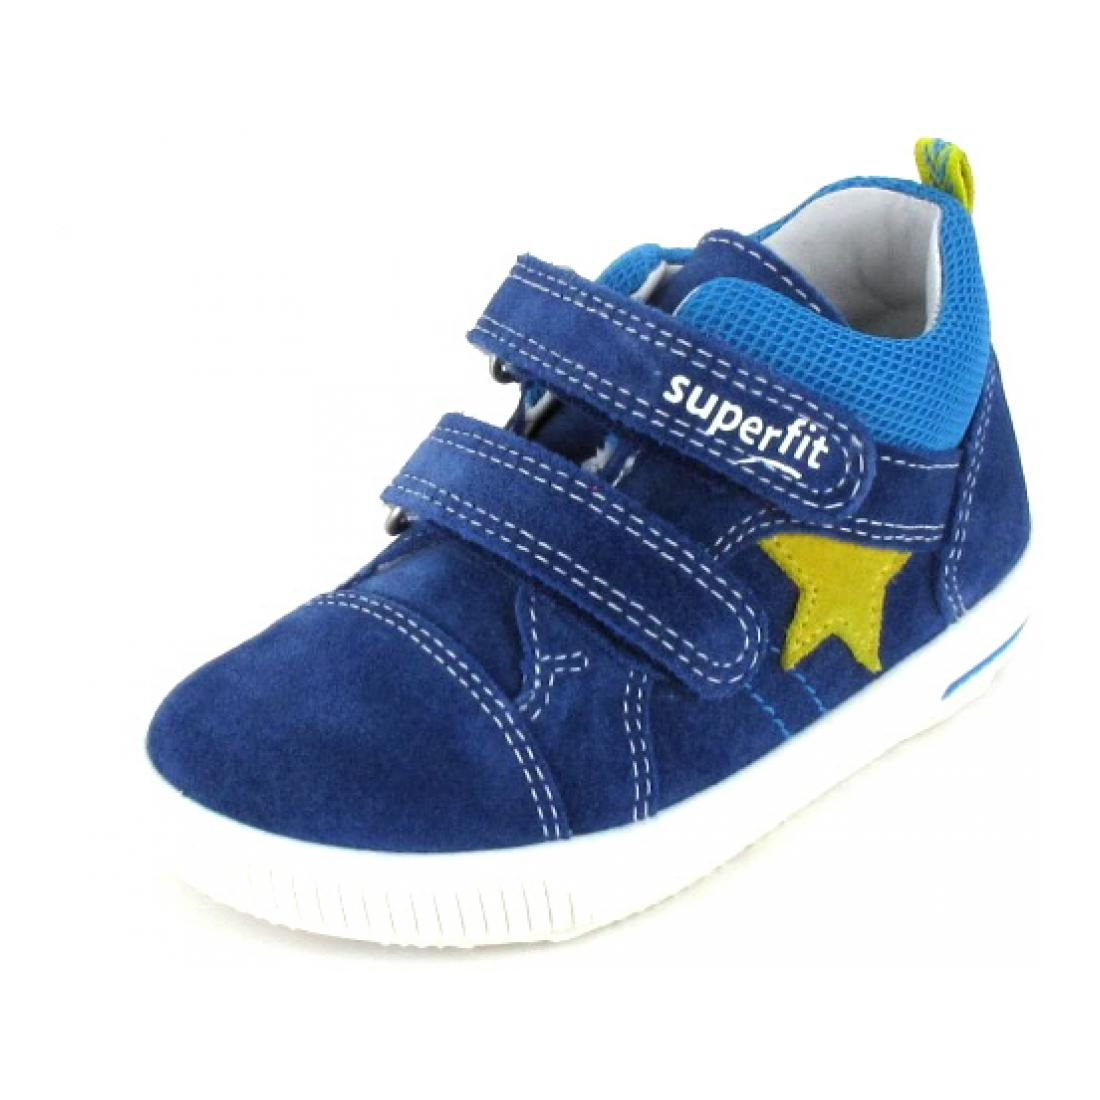 Superfit Klettschuh Moppy